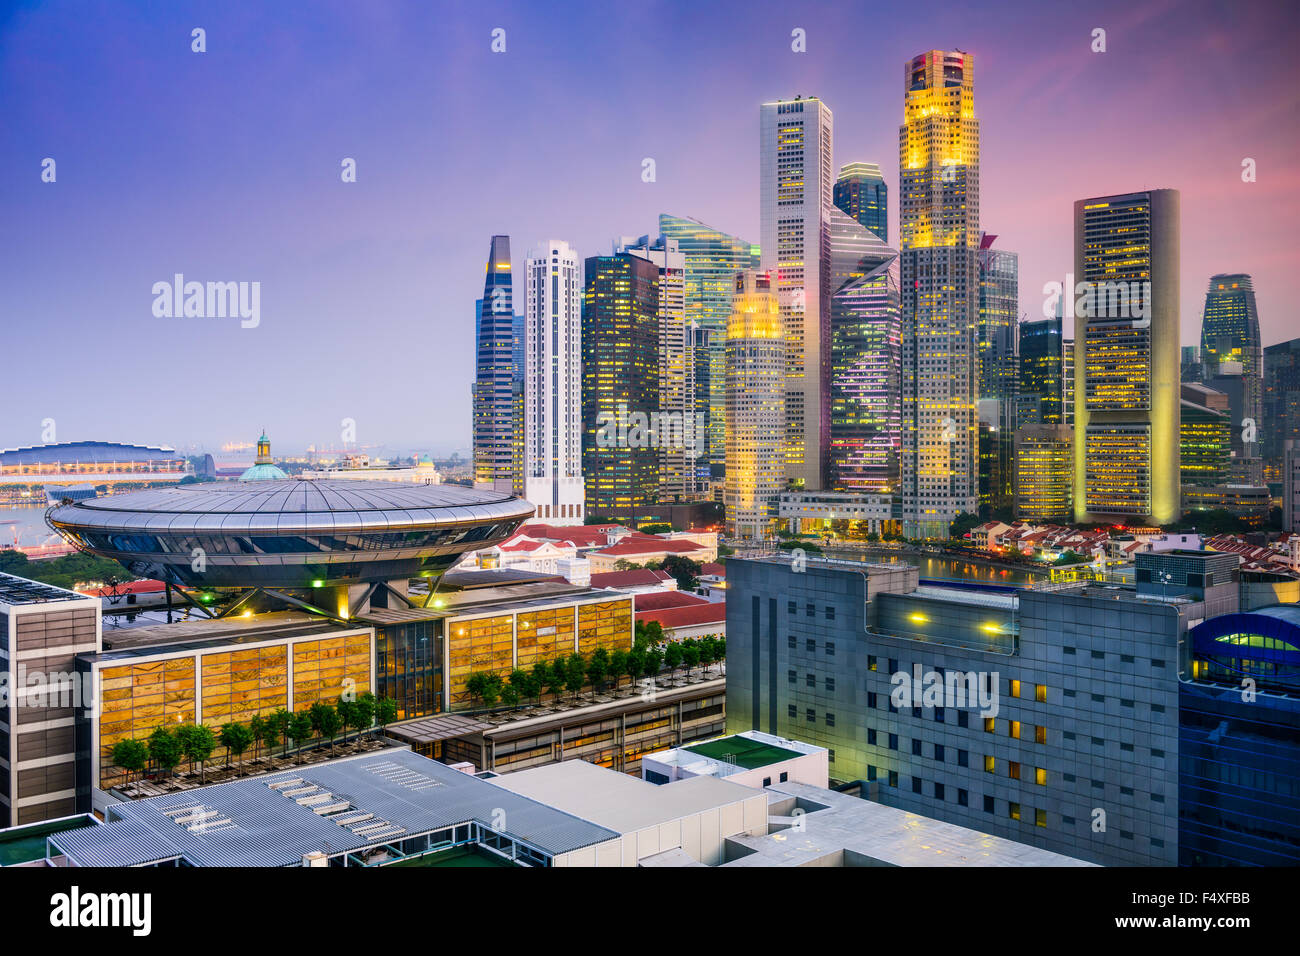 Lo skyline di Singapore. Immagini Stock